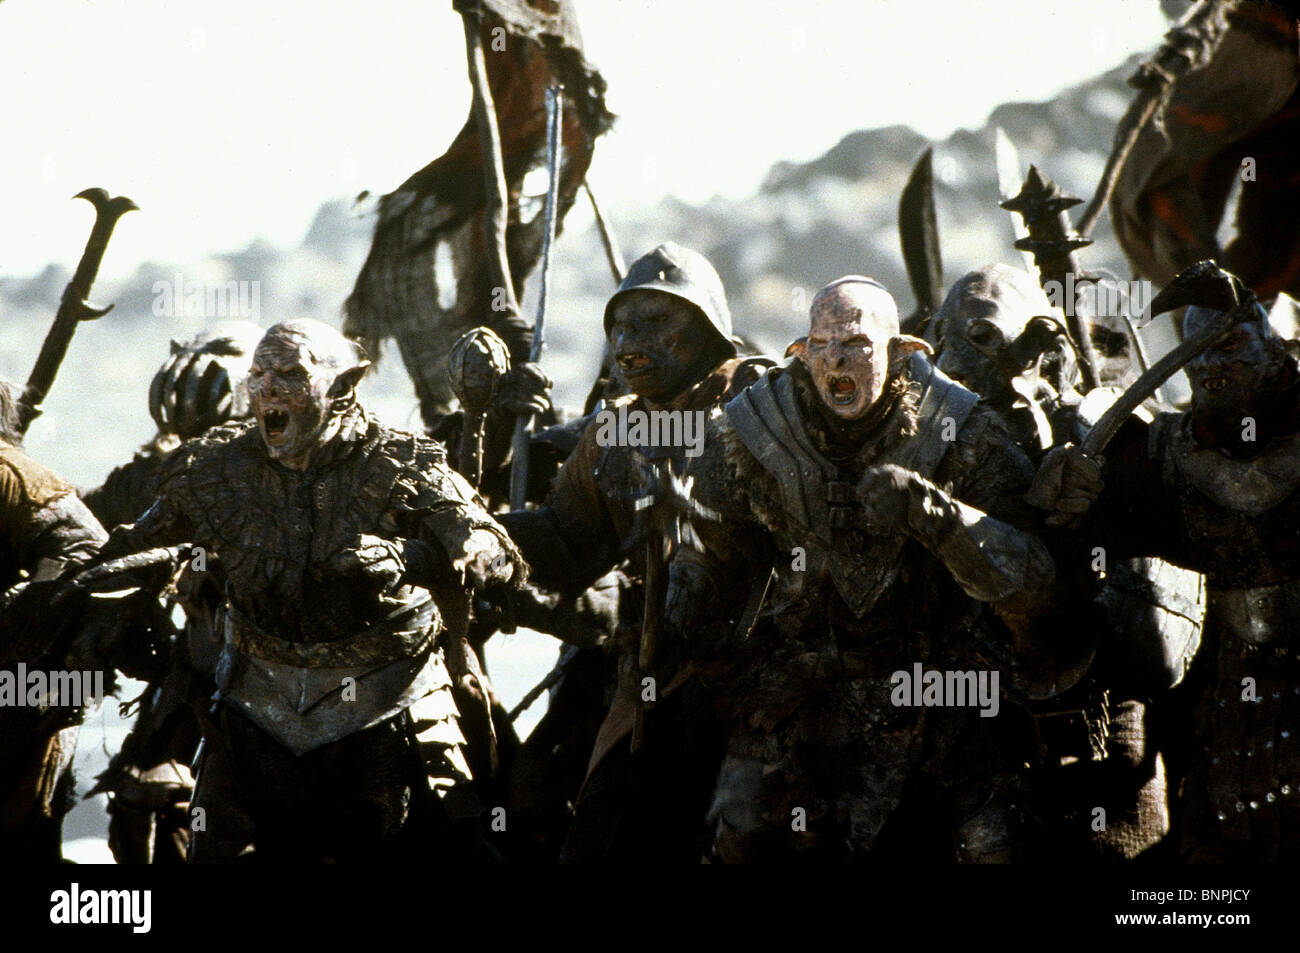 The Orcs The Lord Of The Rings The Fellowship Of The Ring 2001 Stock Photo Alamy